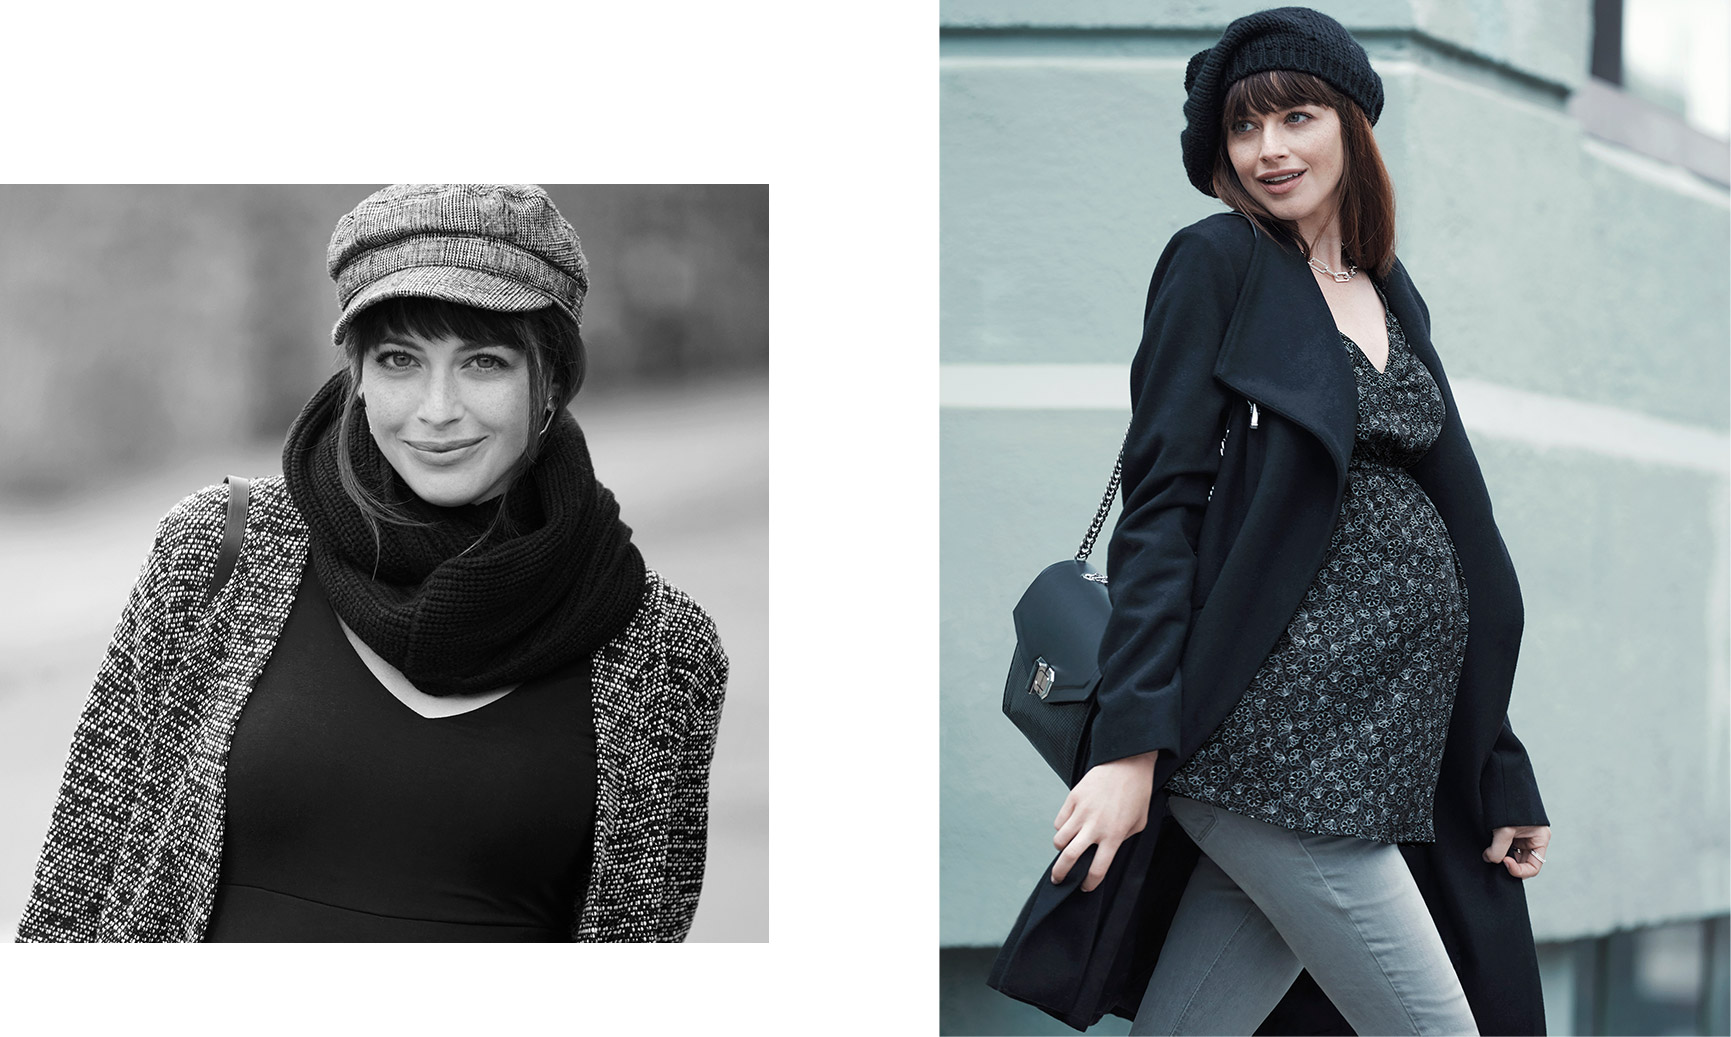 For layering. Add on simply perfect cardigans for layered outfits from weekday to weekend